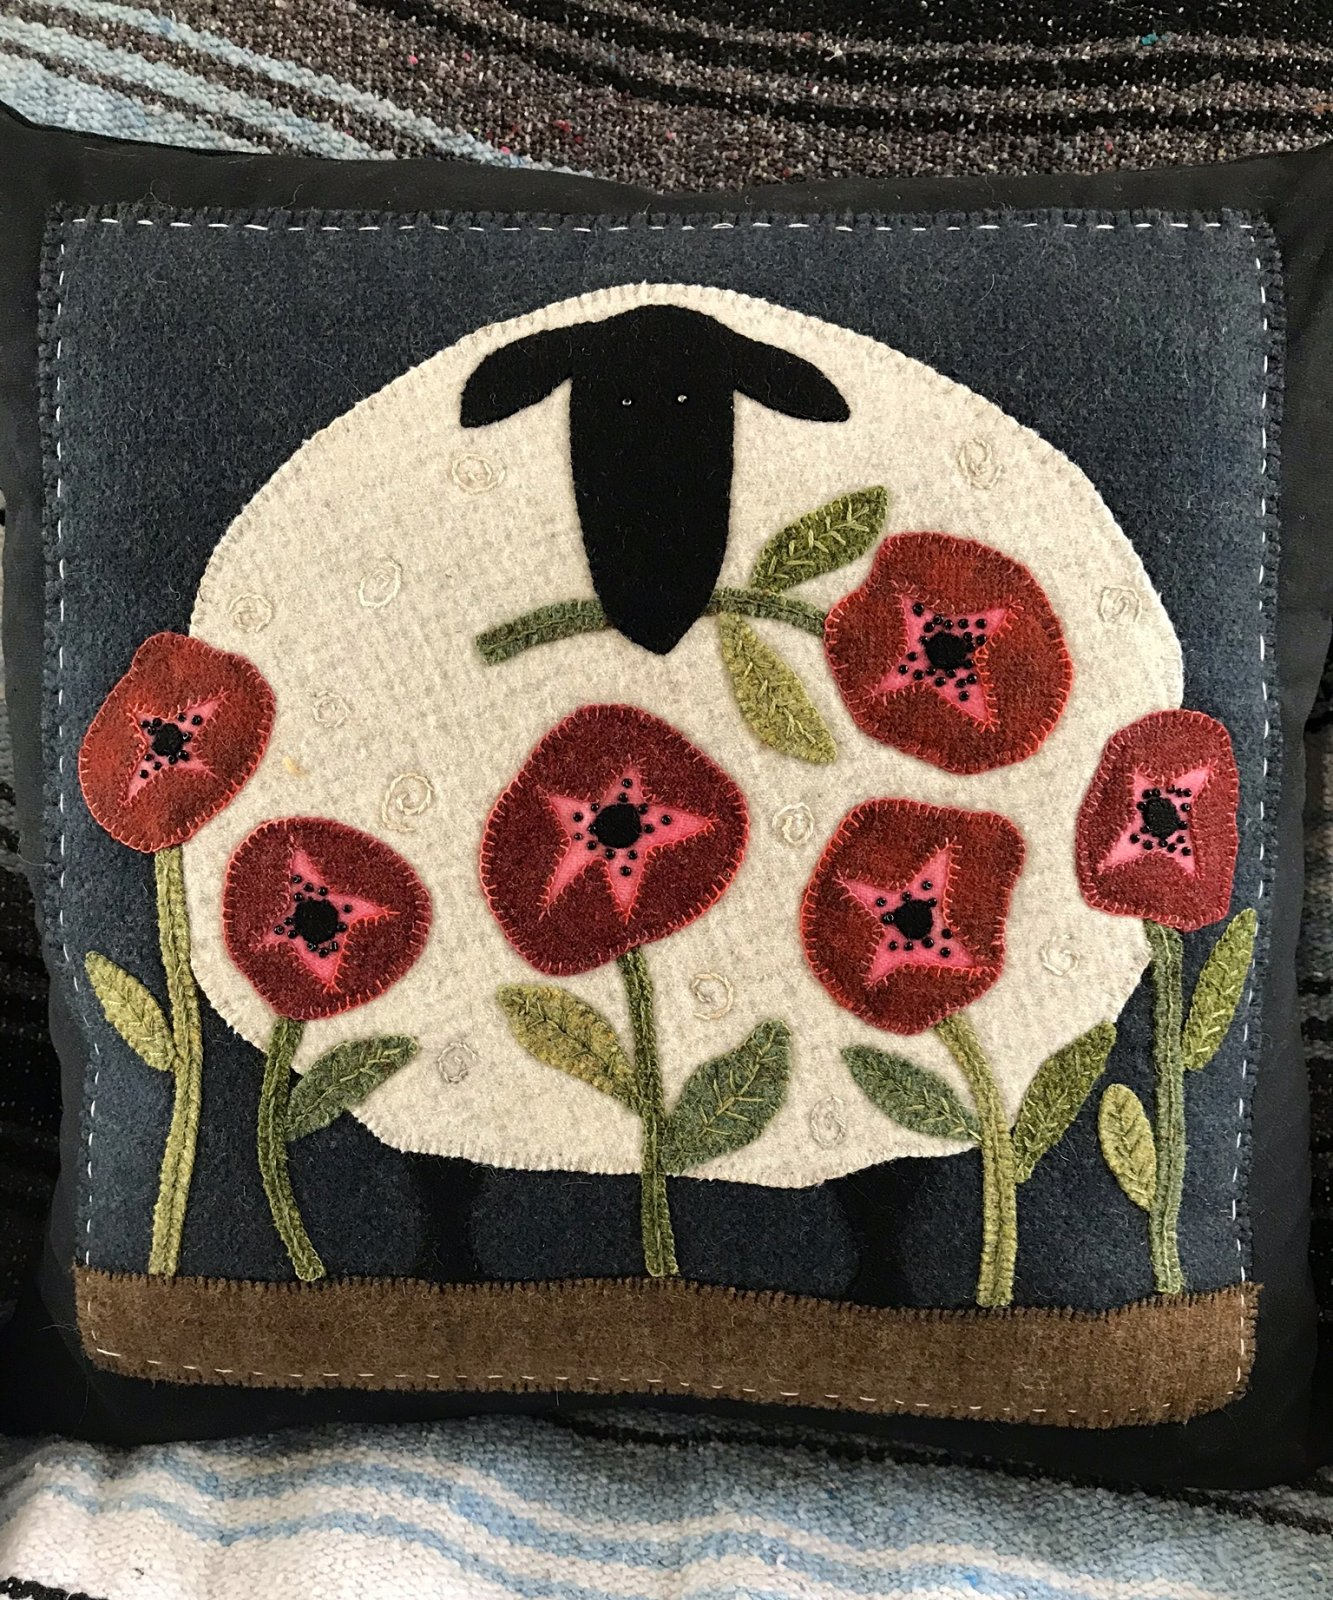 Picking Poppies Wool Applique Kit with Pattern (Not included is the Pillow Form)